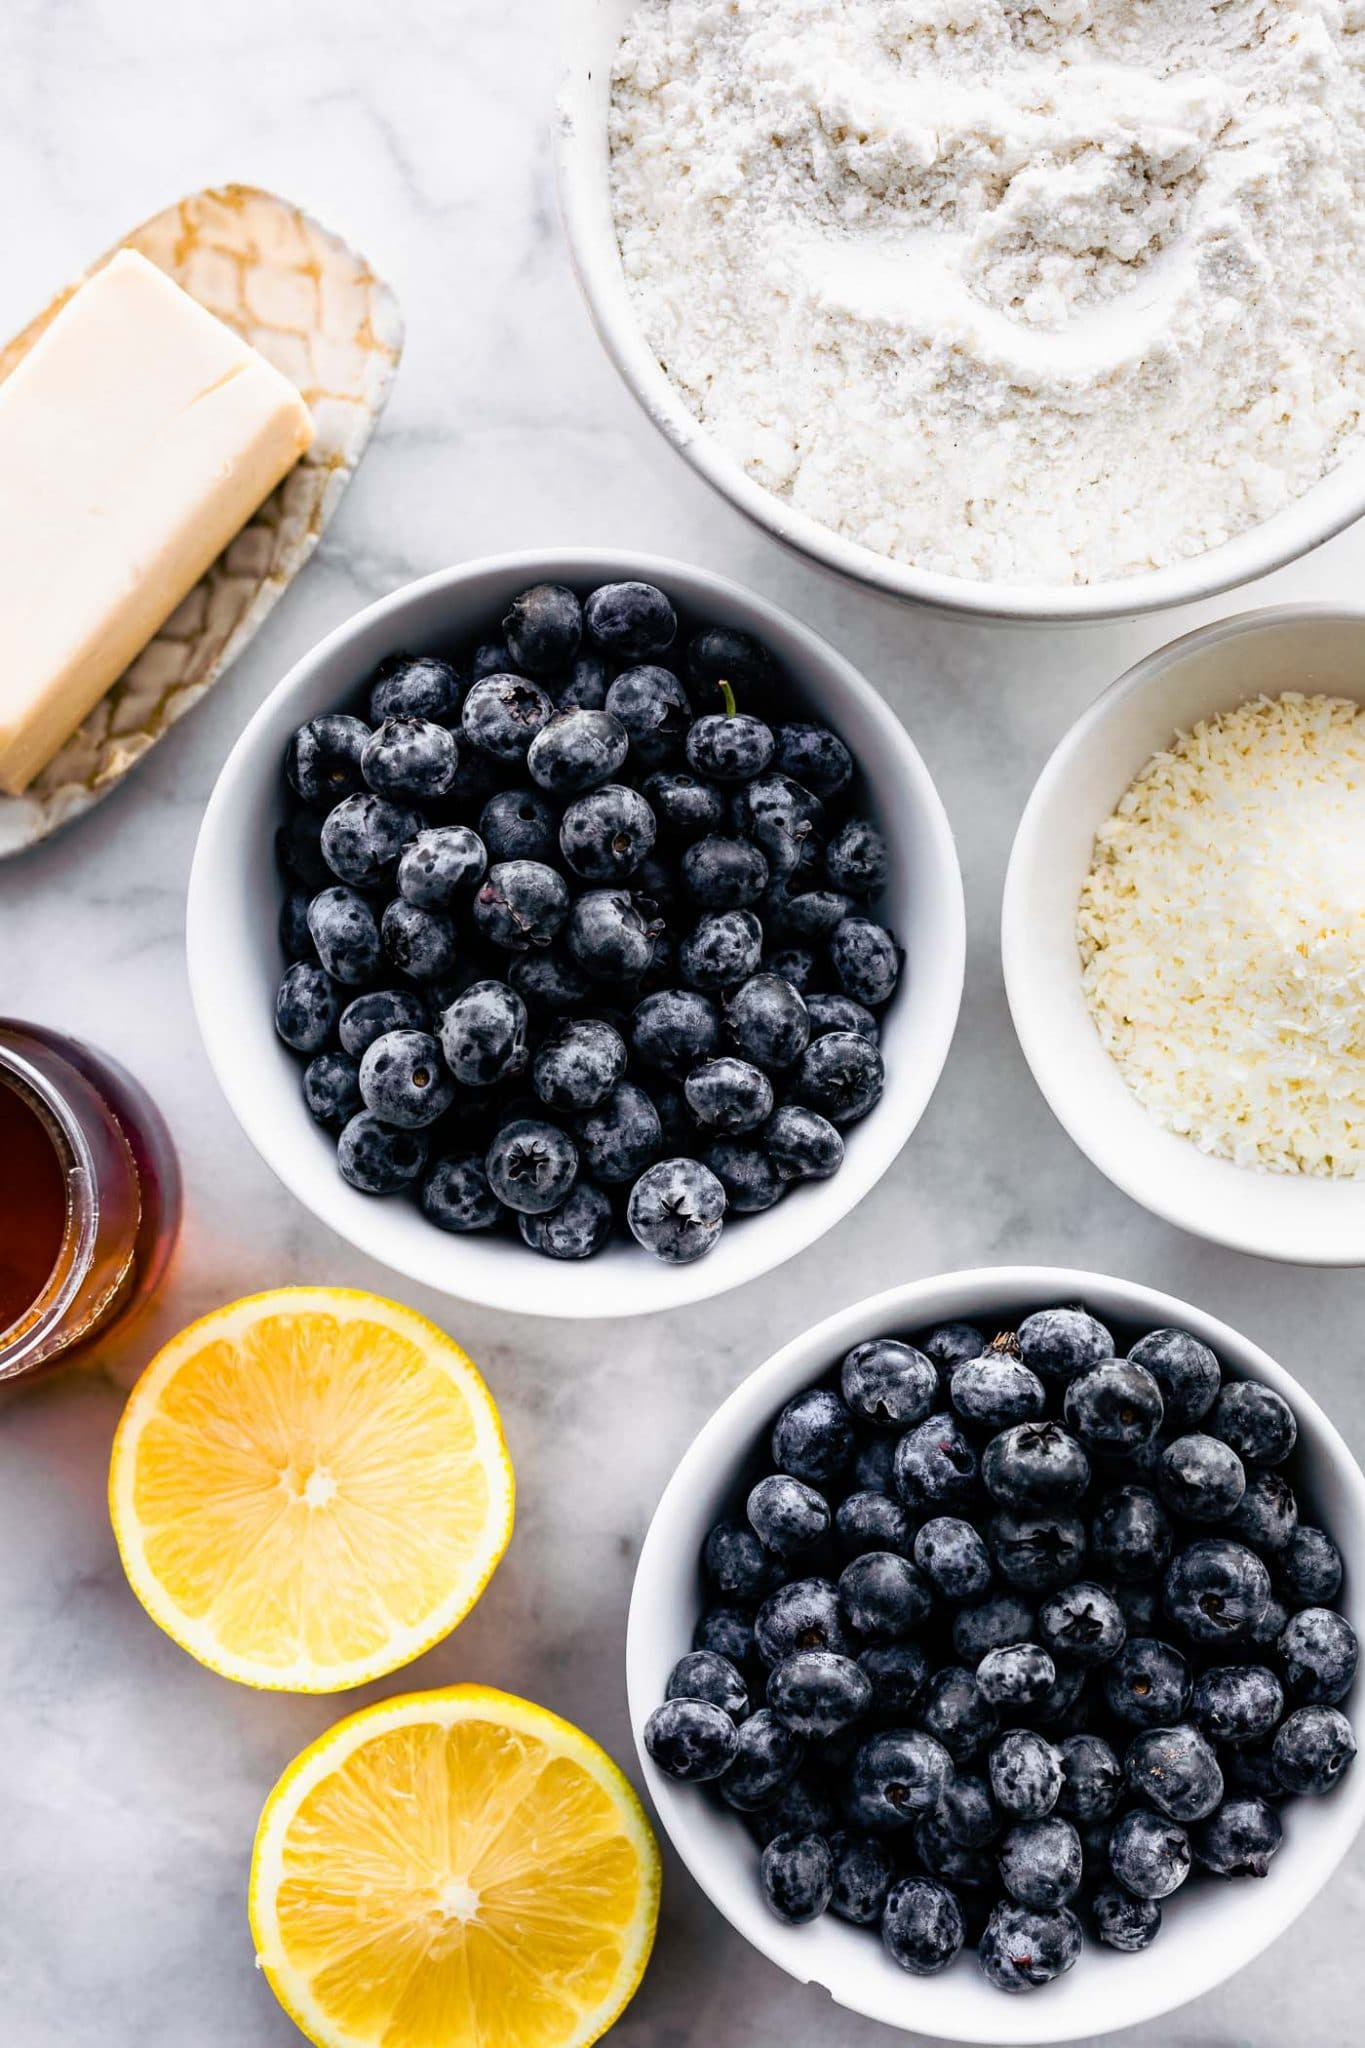 overhead photo: blueberries in a bowl, sliced in half lemon, coconut flakes in a bowl, stick of butter on a plate, bowl of gluten free flour